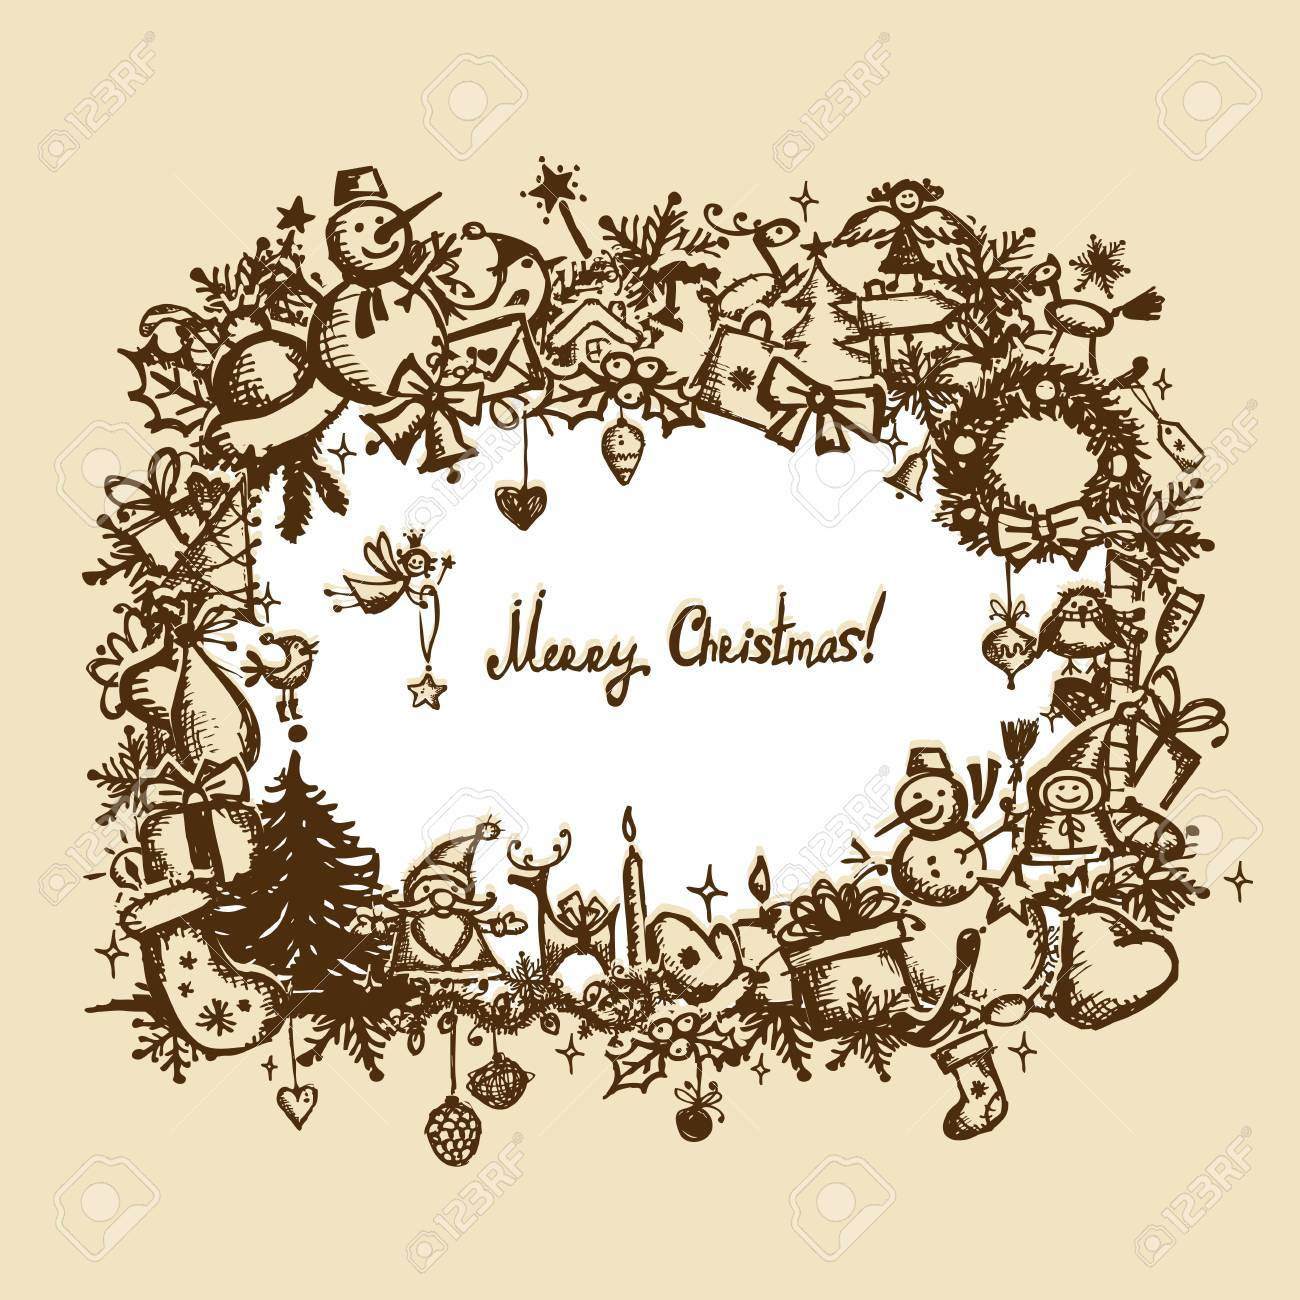 451 christmas wreaths stock vector illustration and royalty free